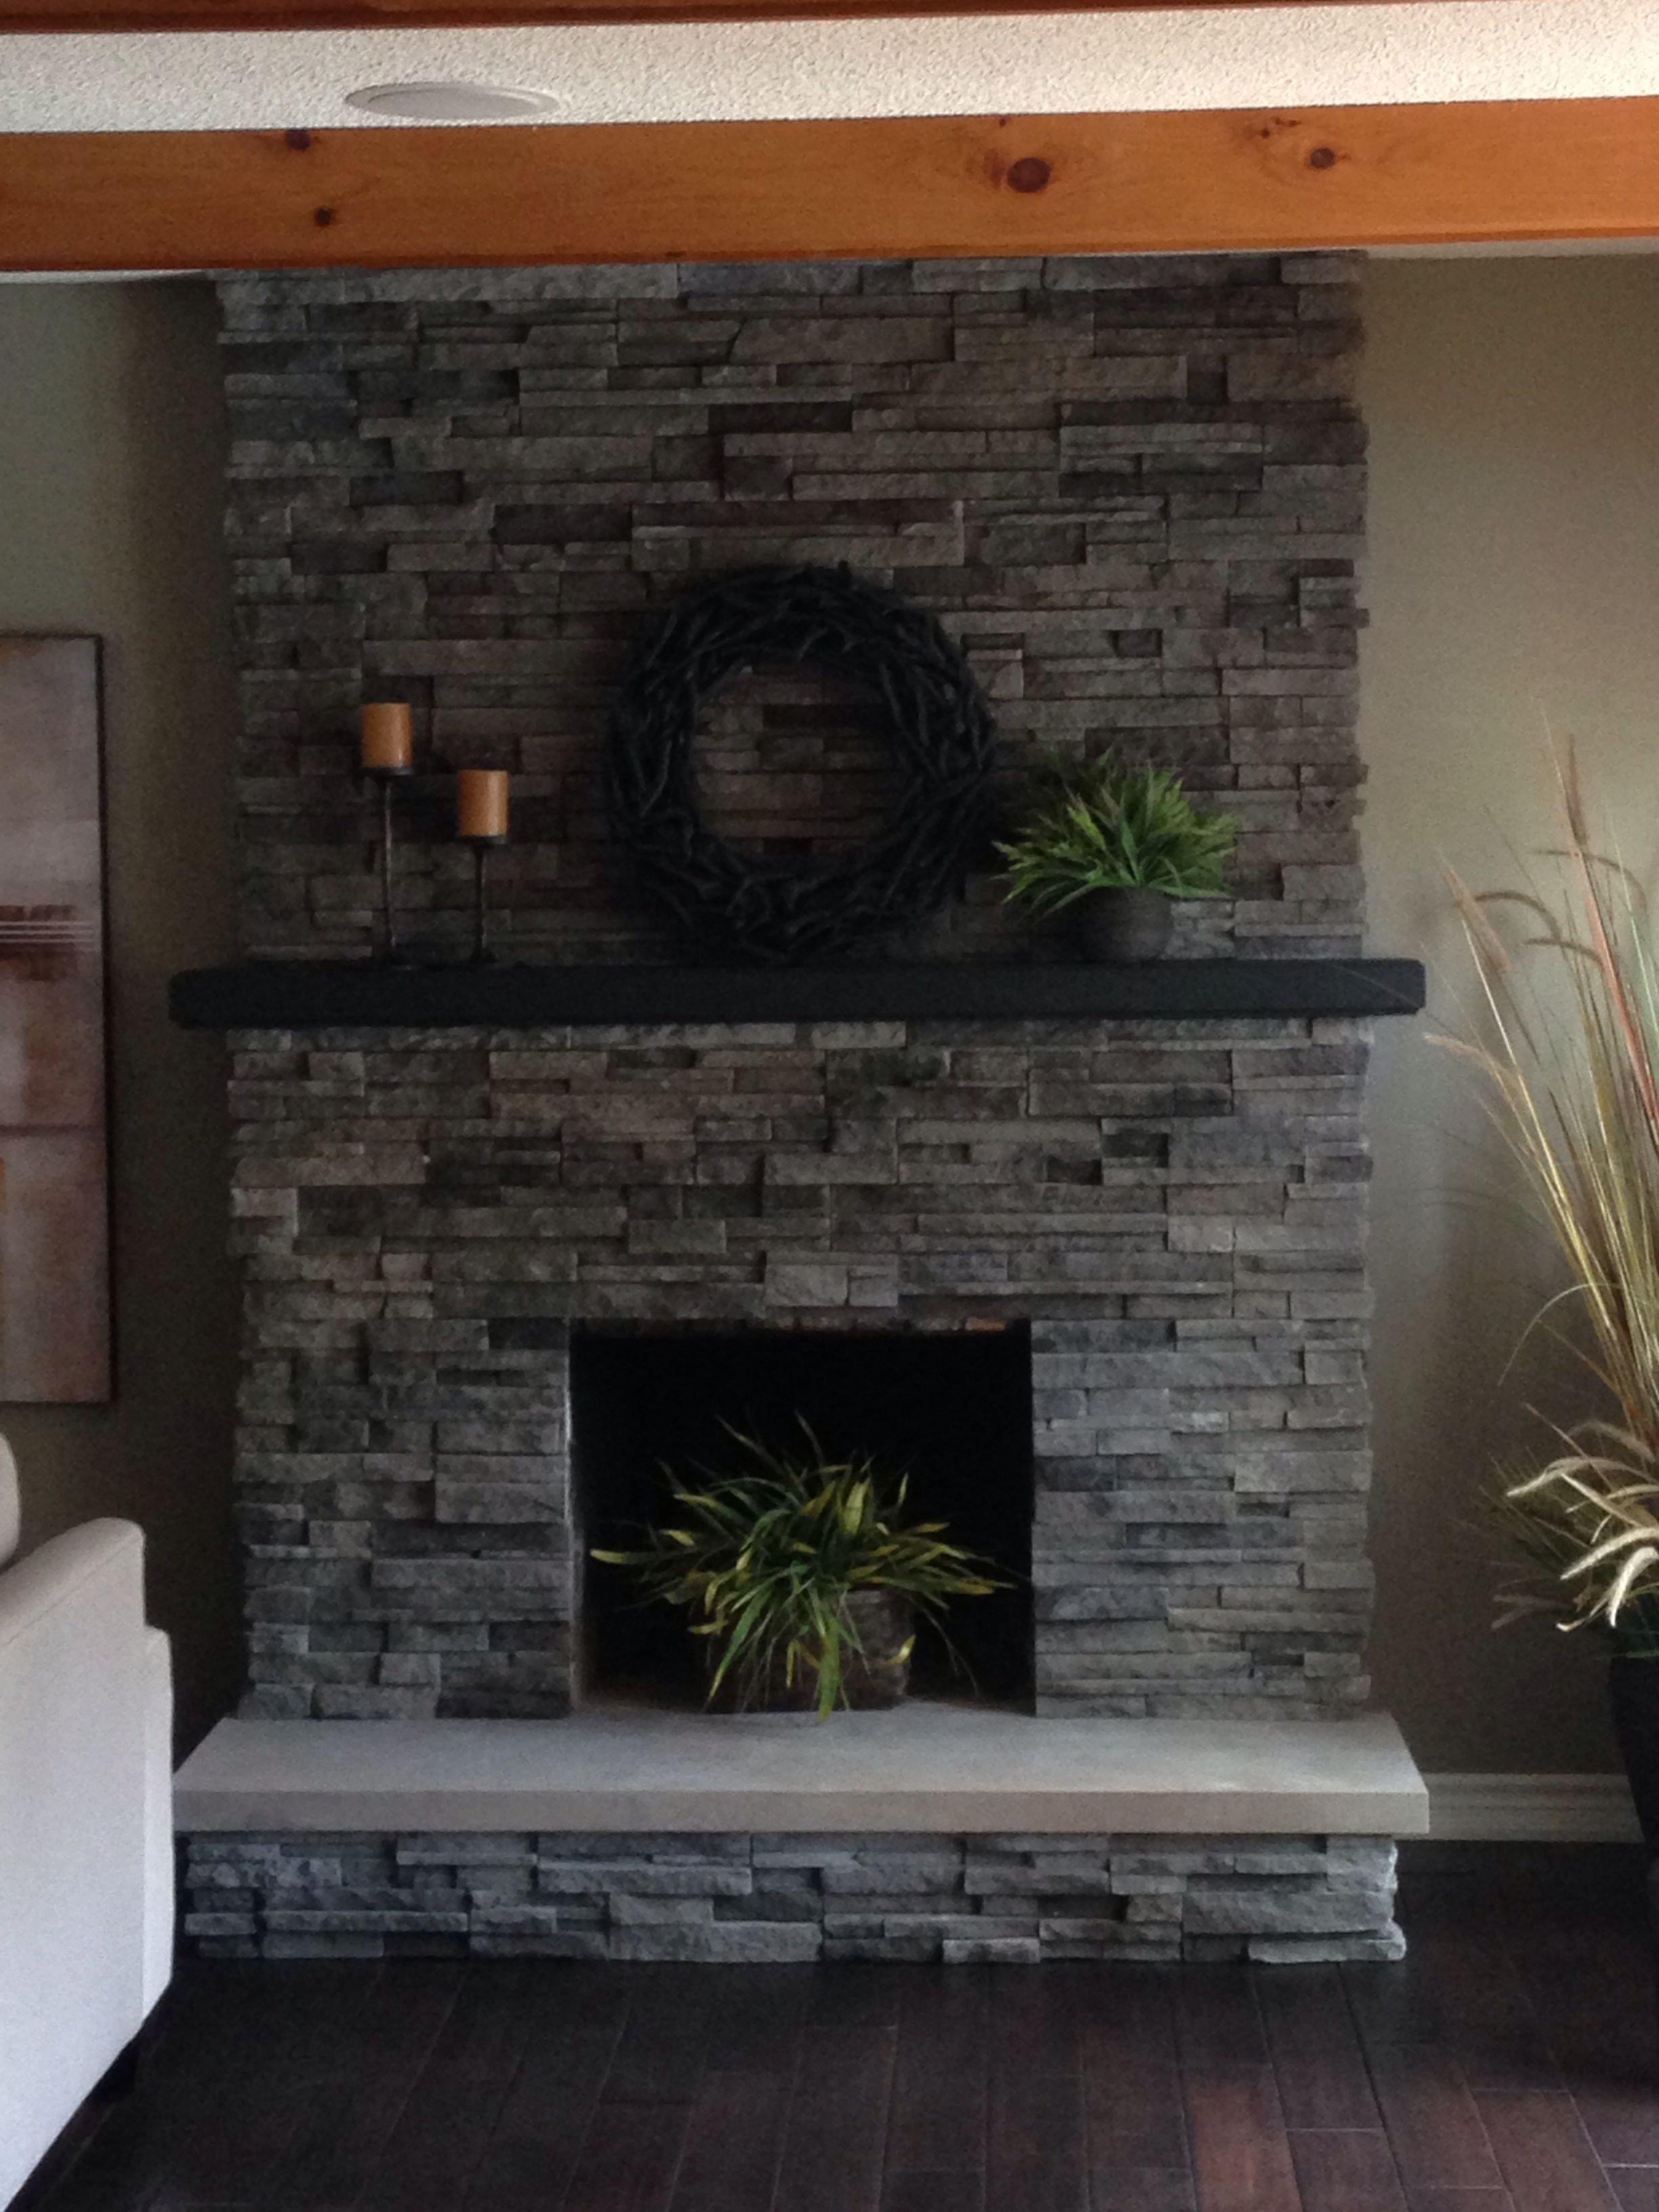 Stupendous Tricks Fireplace Candles Display Fake Fireplace Romantic Fireplace Drawing Built Ins Cou Brick Fireplace Remodel Fireplace Remodel Fireplace Hearth